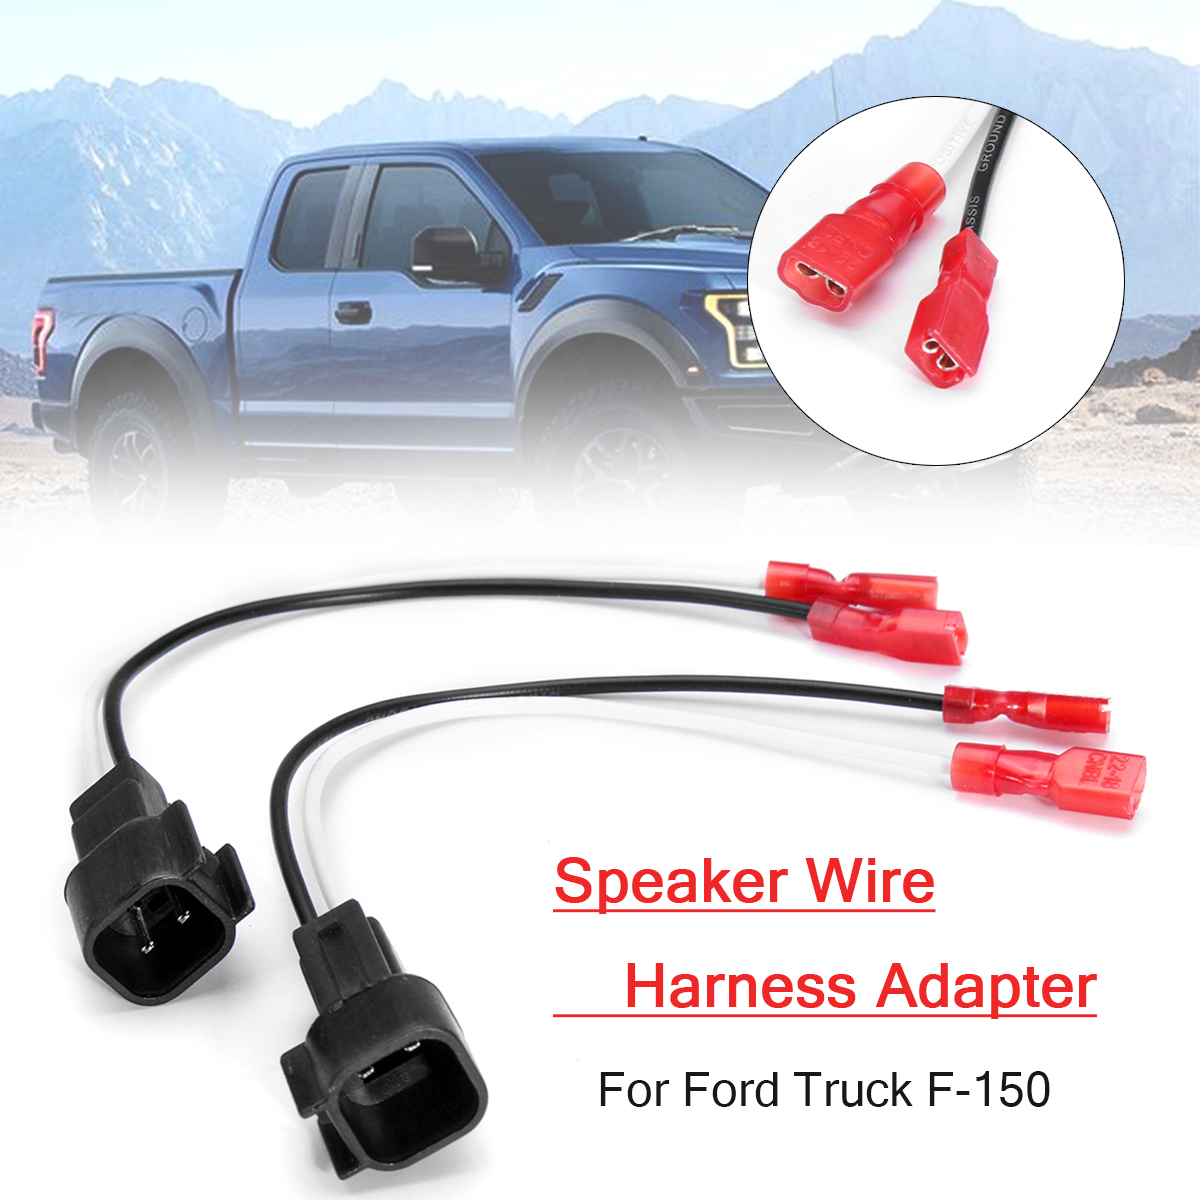 radio speaker wire harness adapter plug metra 72 5600 for ford truck f 150 in cables adapters sockets from automobiles motorcycles on aliexpress com  [ 1200 x 1200 Pixel ]